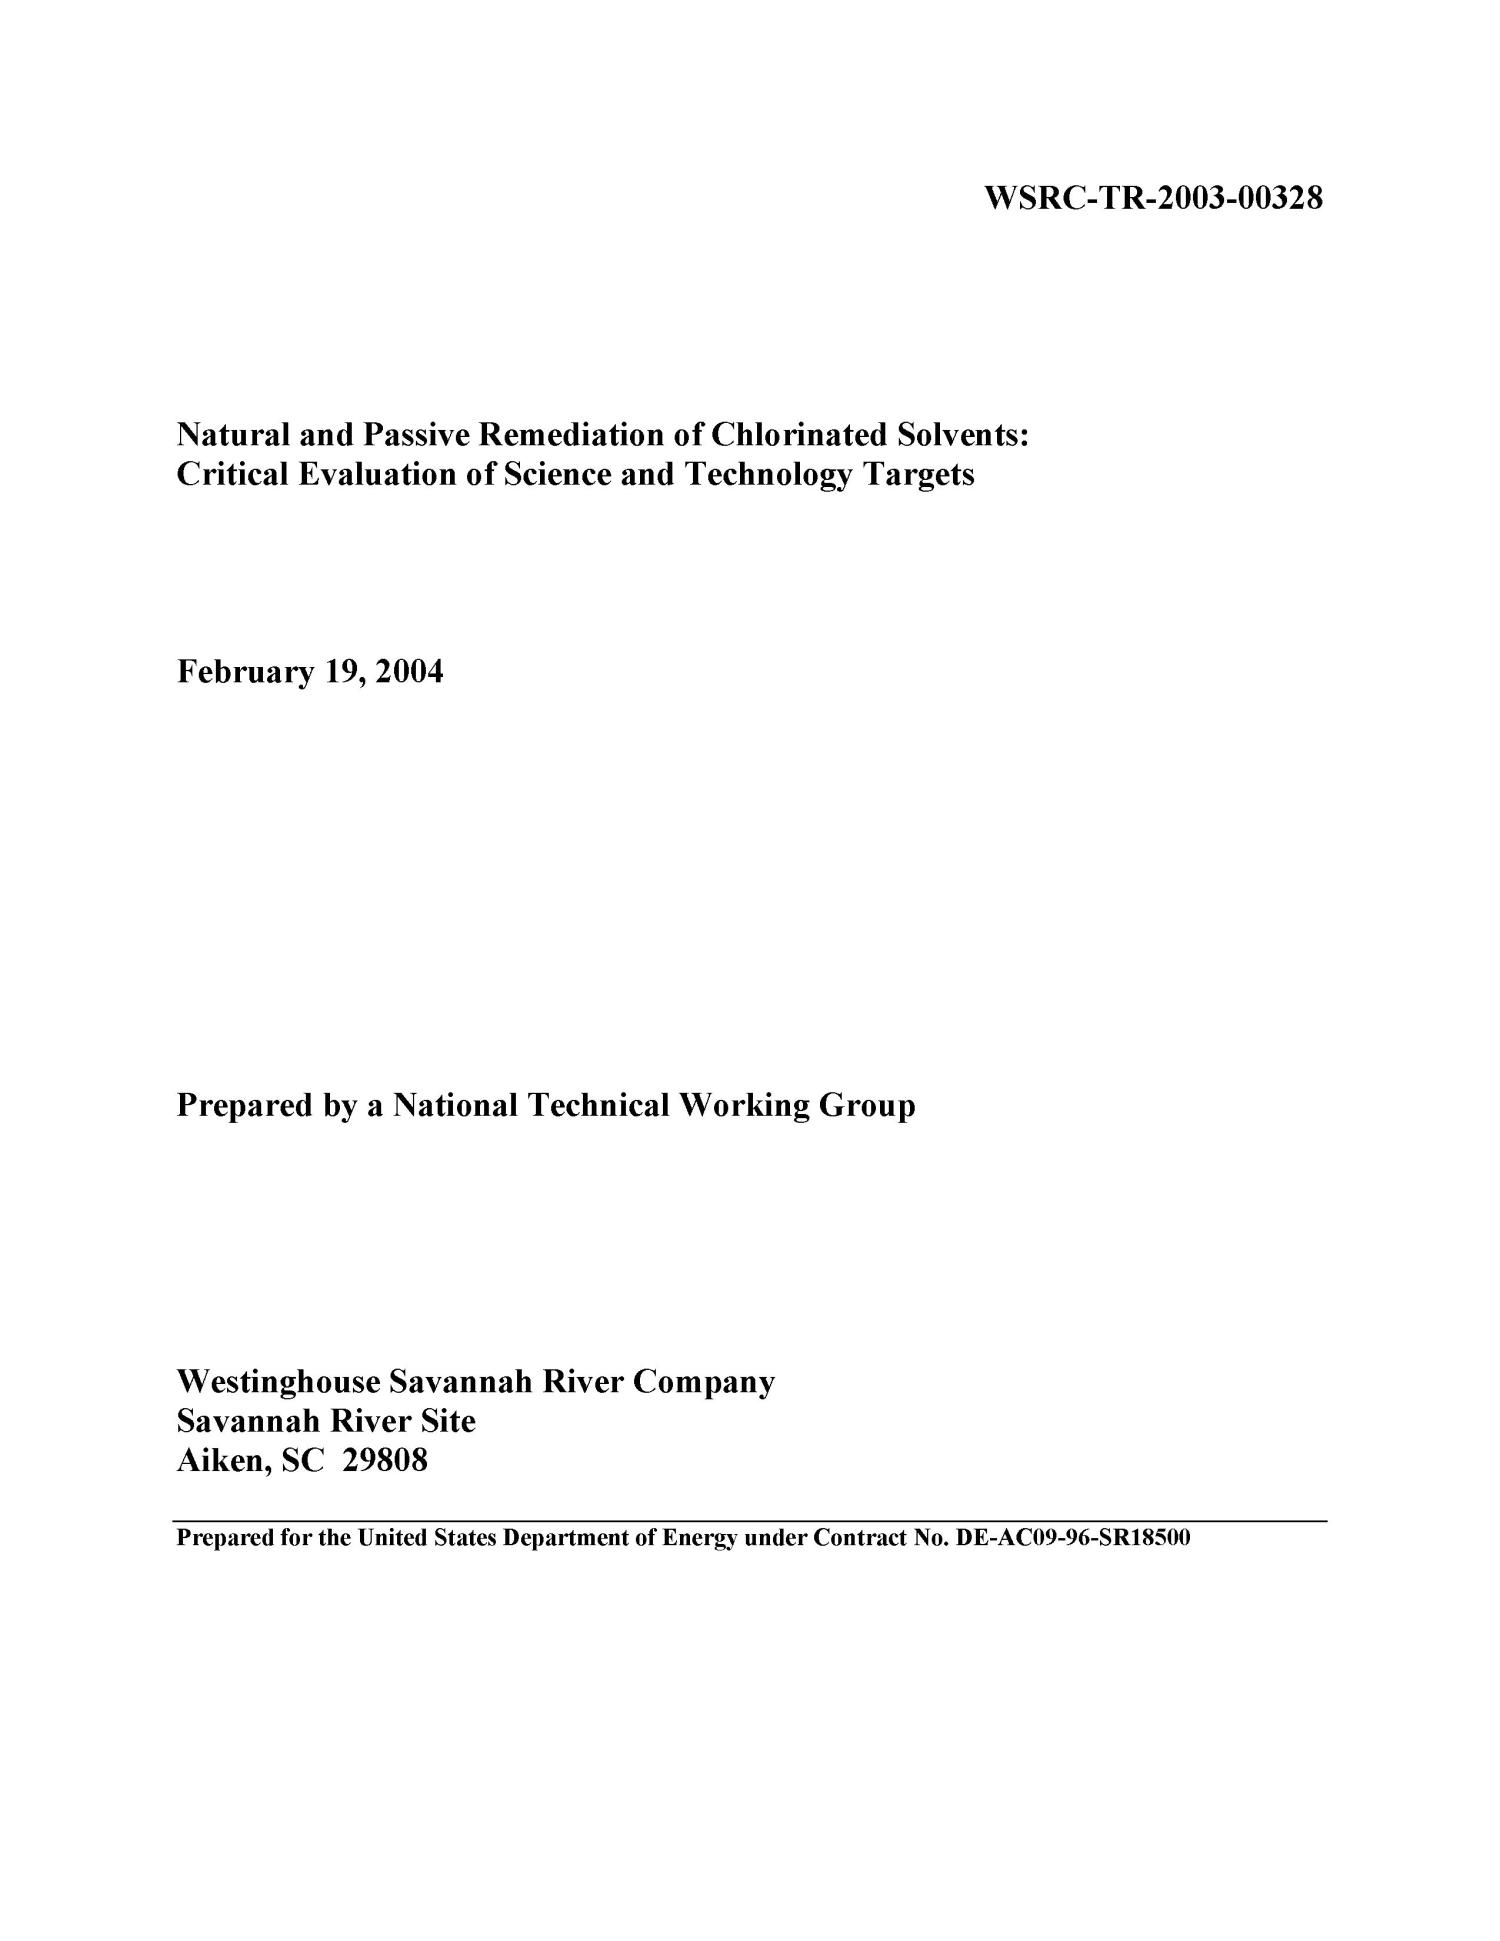 Natural and Passive Remediation of Chlorinated Solvents: Critical Evaluation of Science and Technology Targets                                                                                                      [Sequence #]: 1 of 150